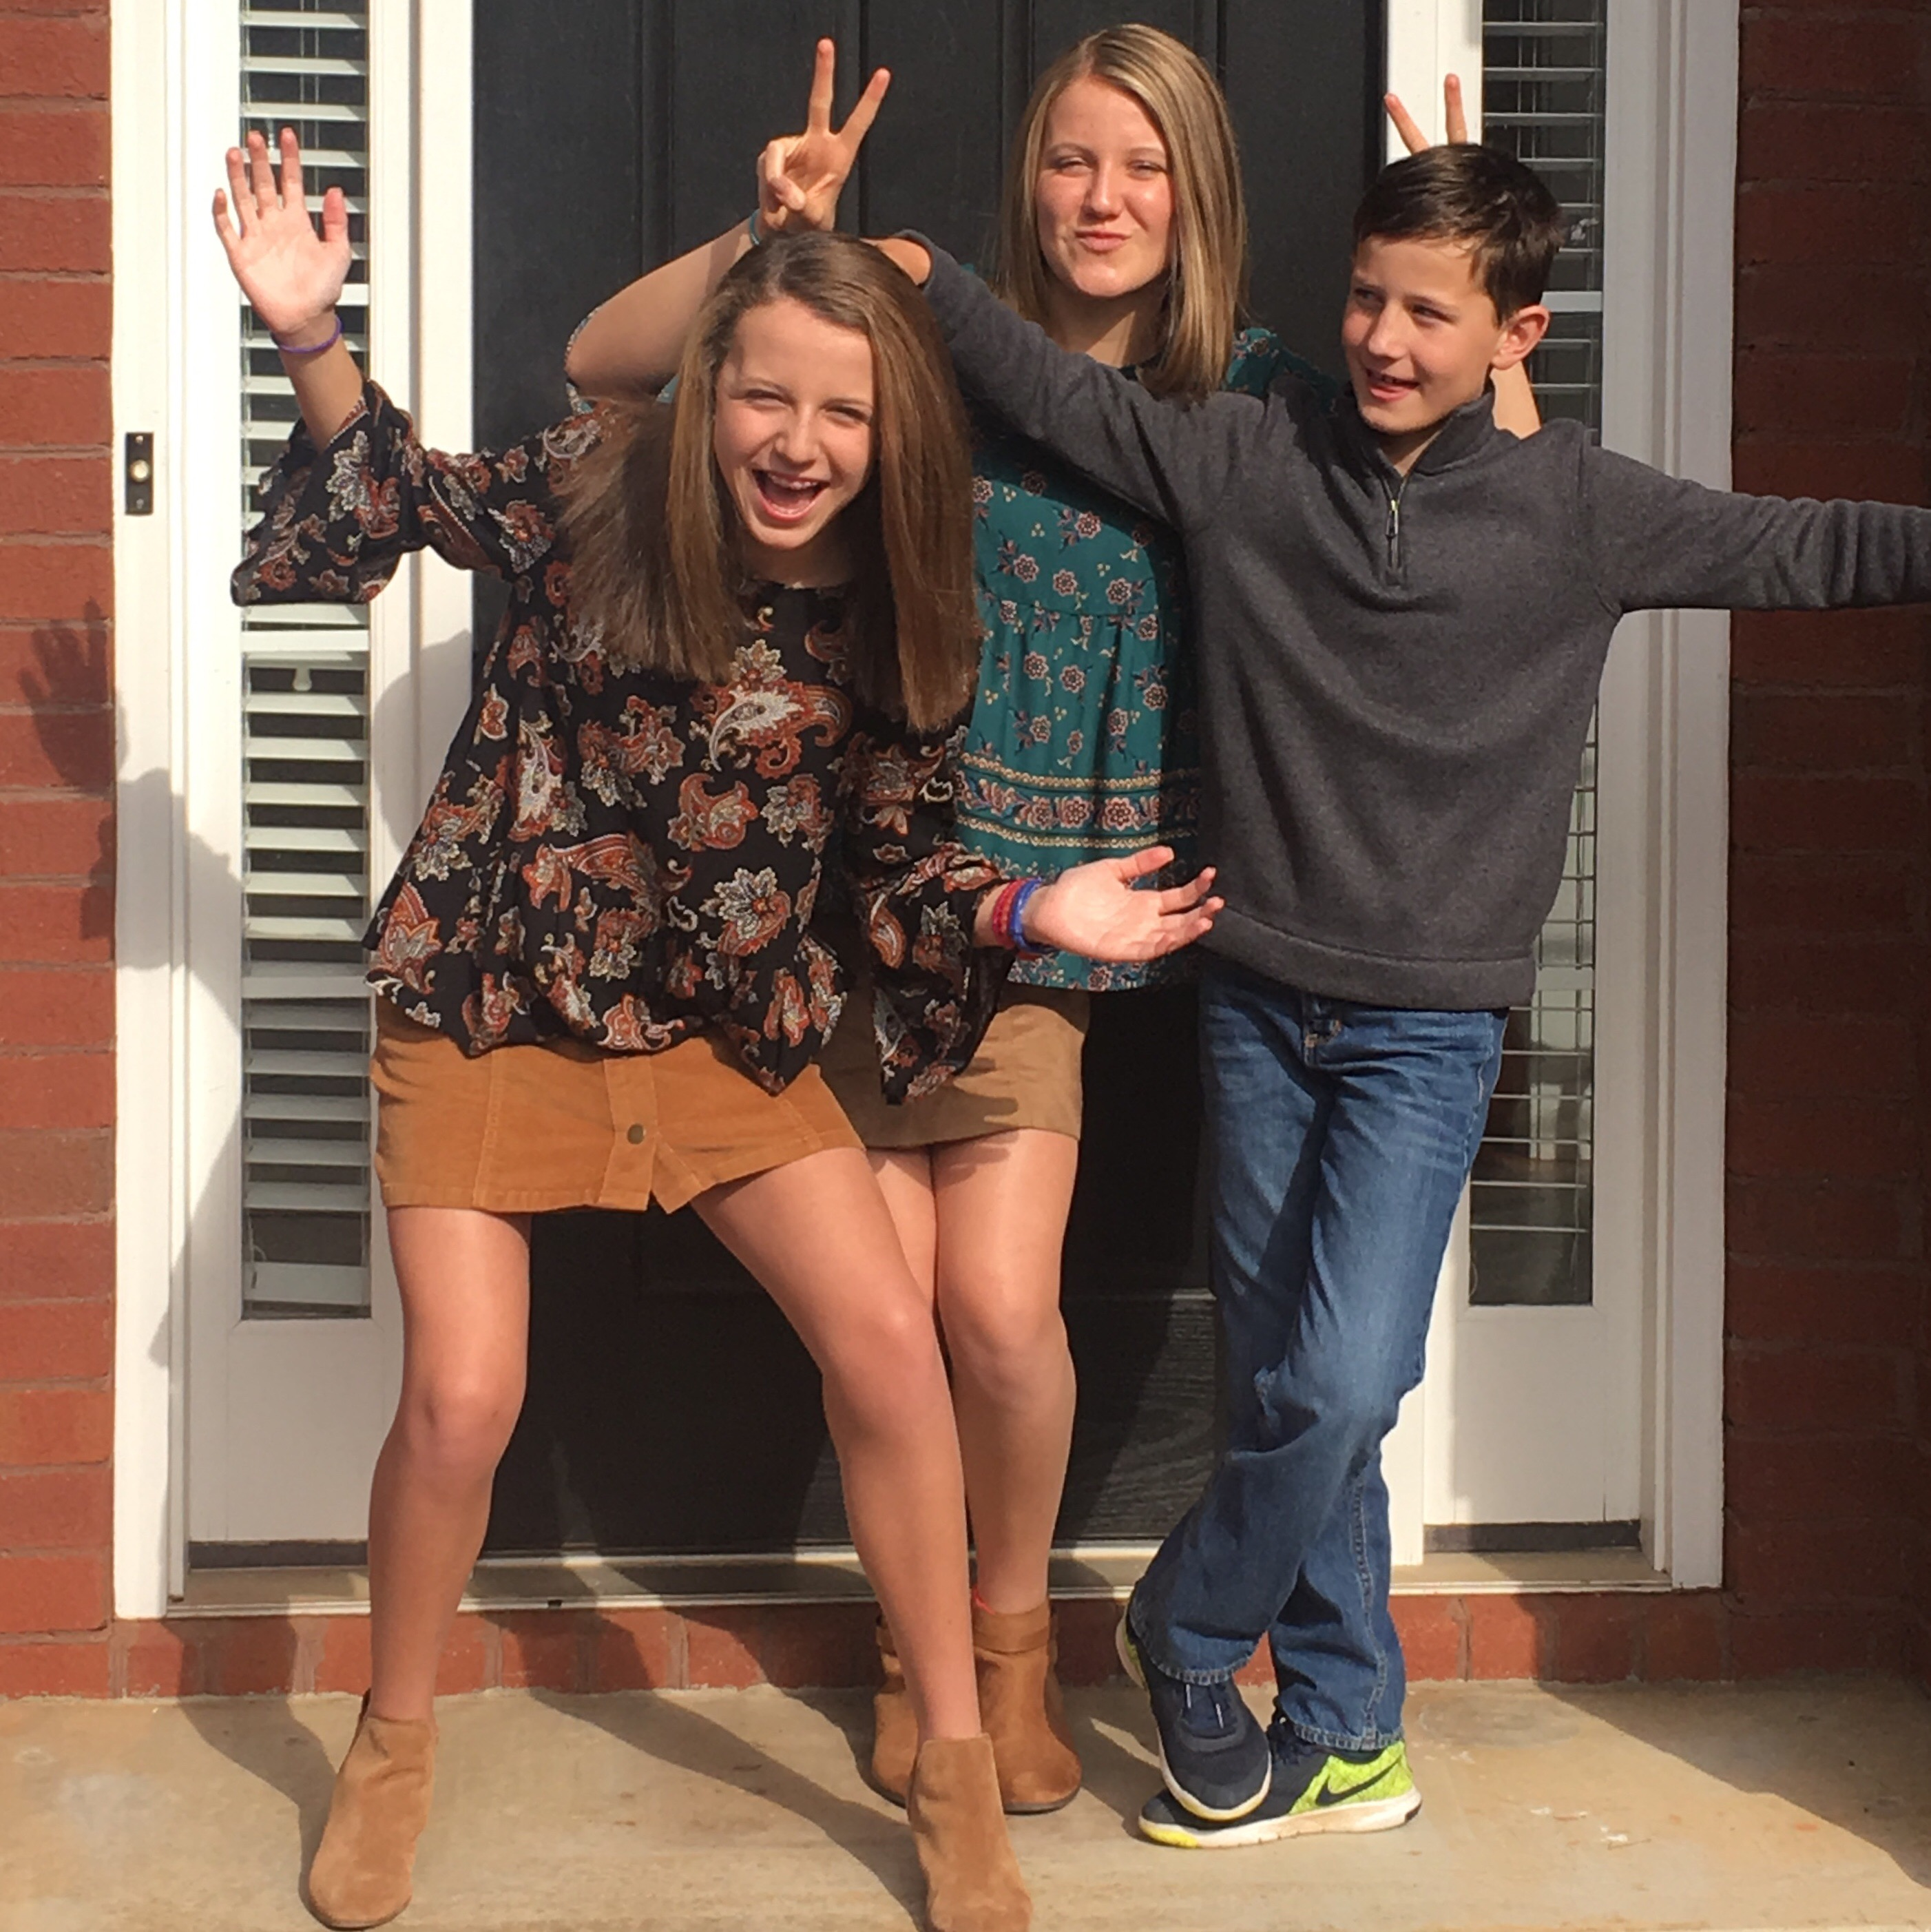 My two nieces and my nephew being super silly on Thanksgiving in the family photo.